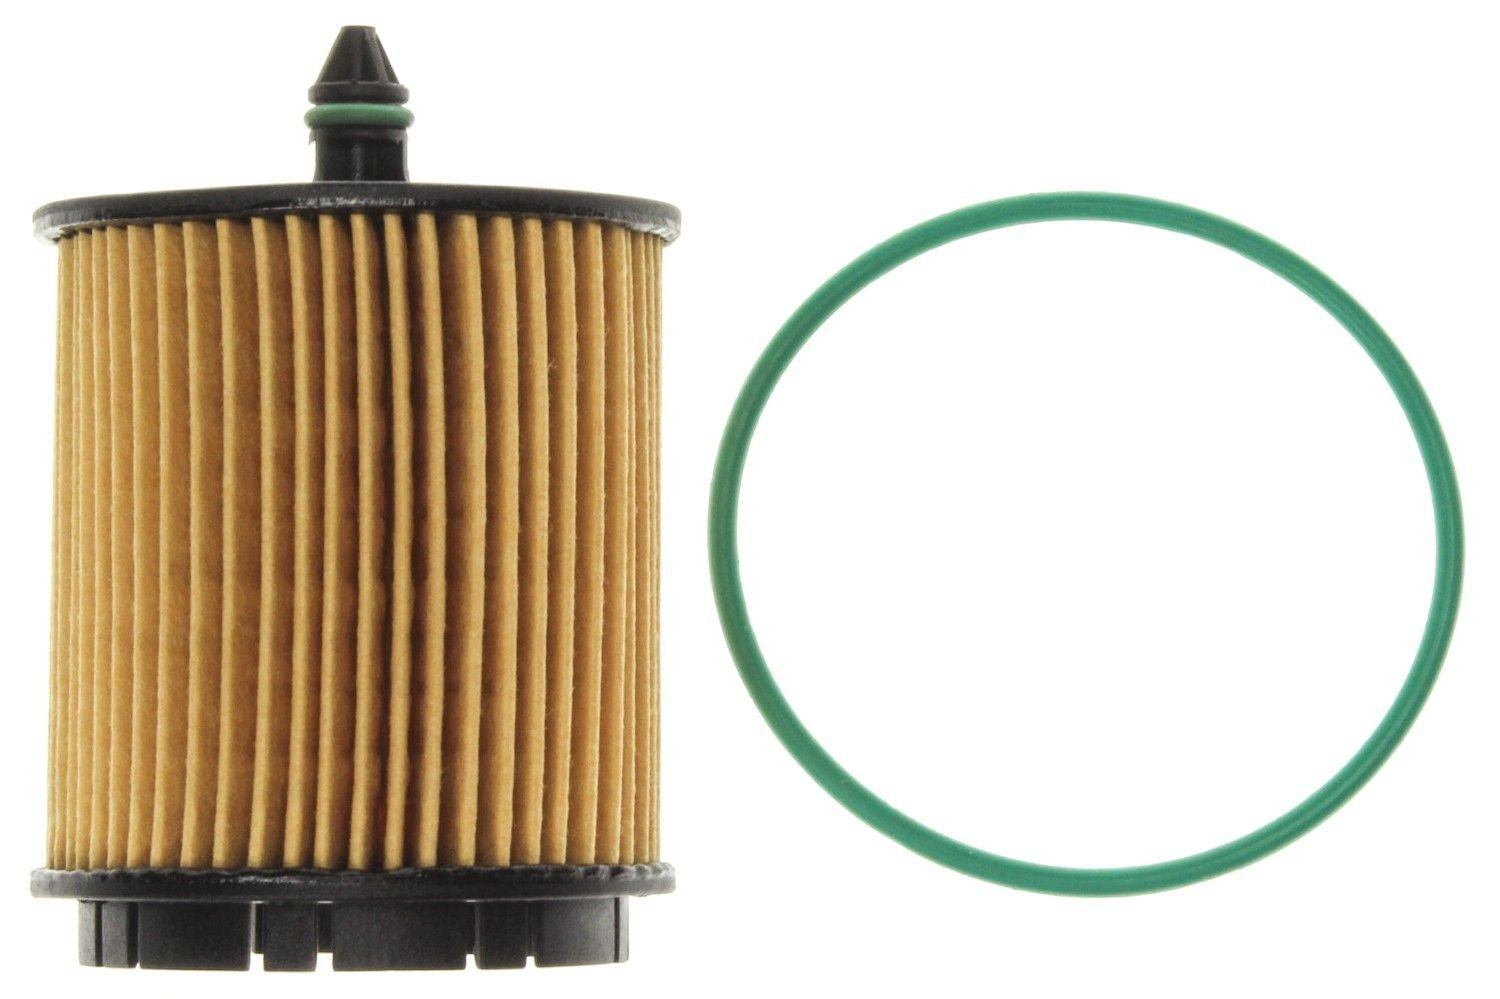 Where Fuel Filter On Hhr Wiring Library 2007 Chevy Silverado 1500 Location 2006 Chevrolet Engine Oil 4 Cyl 24l Mahle Ox 258d Eco